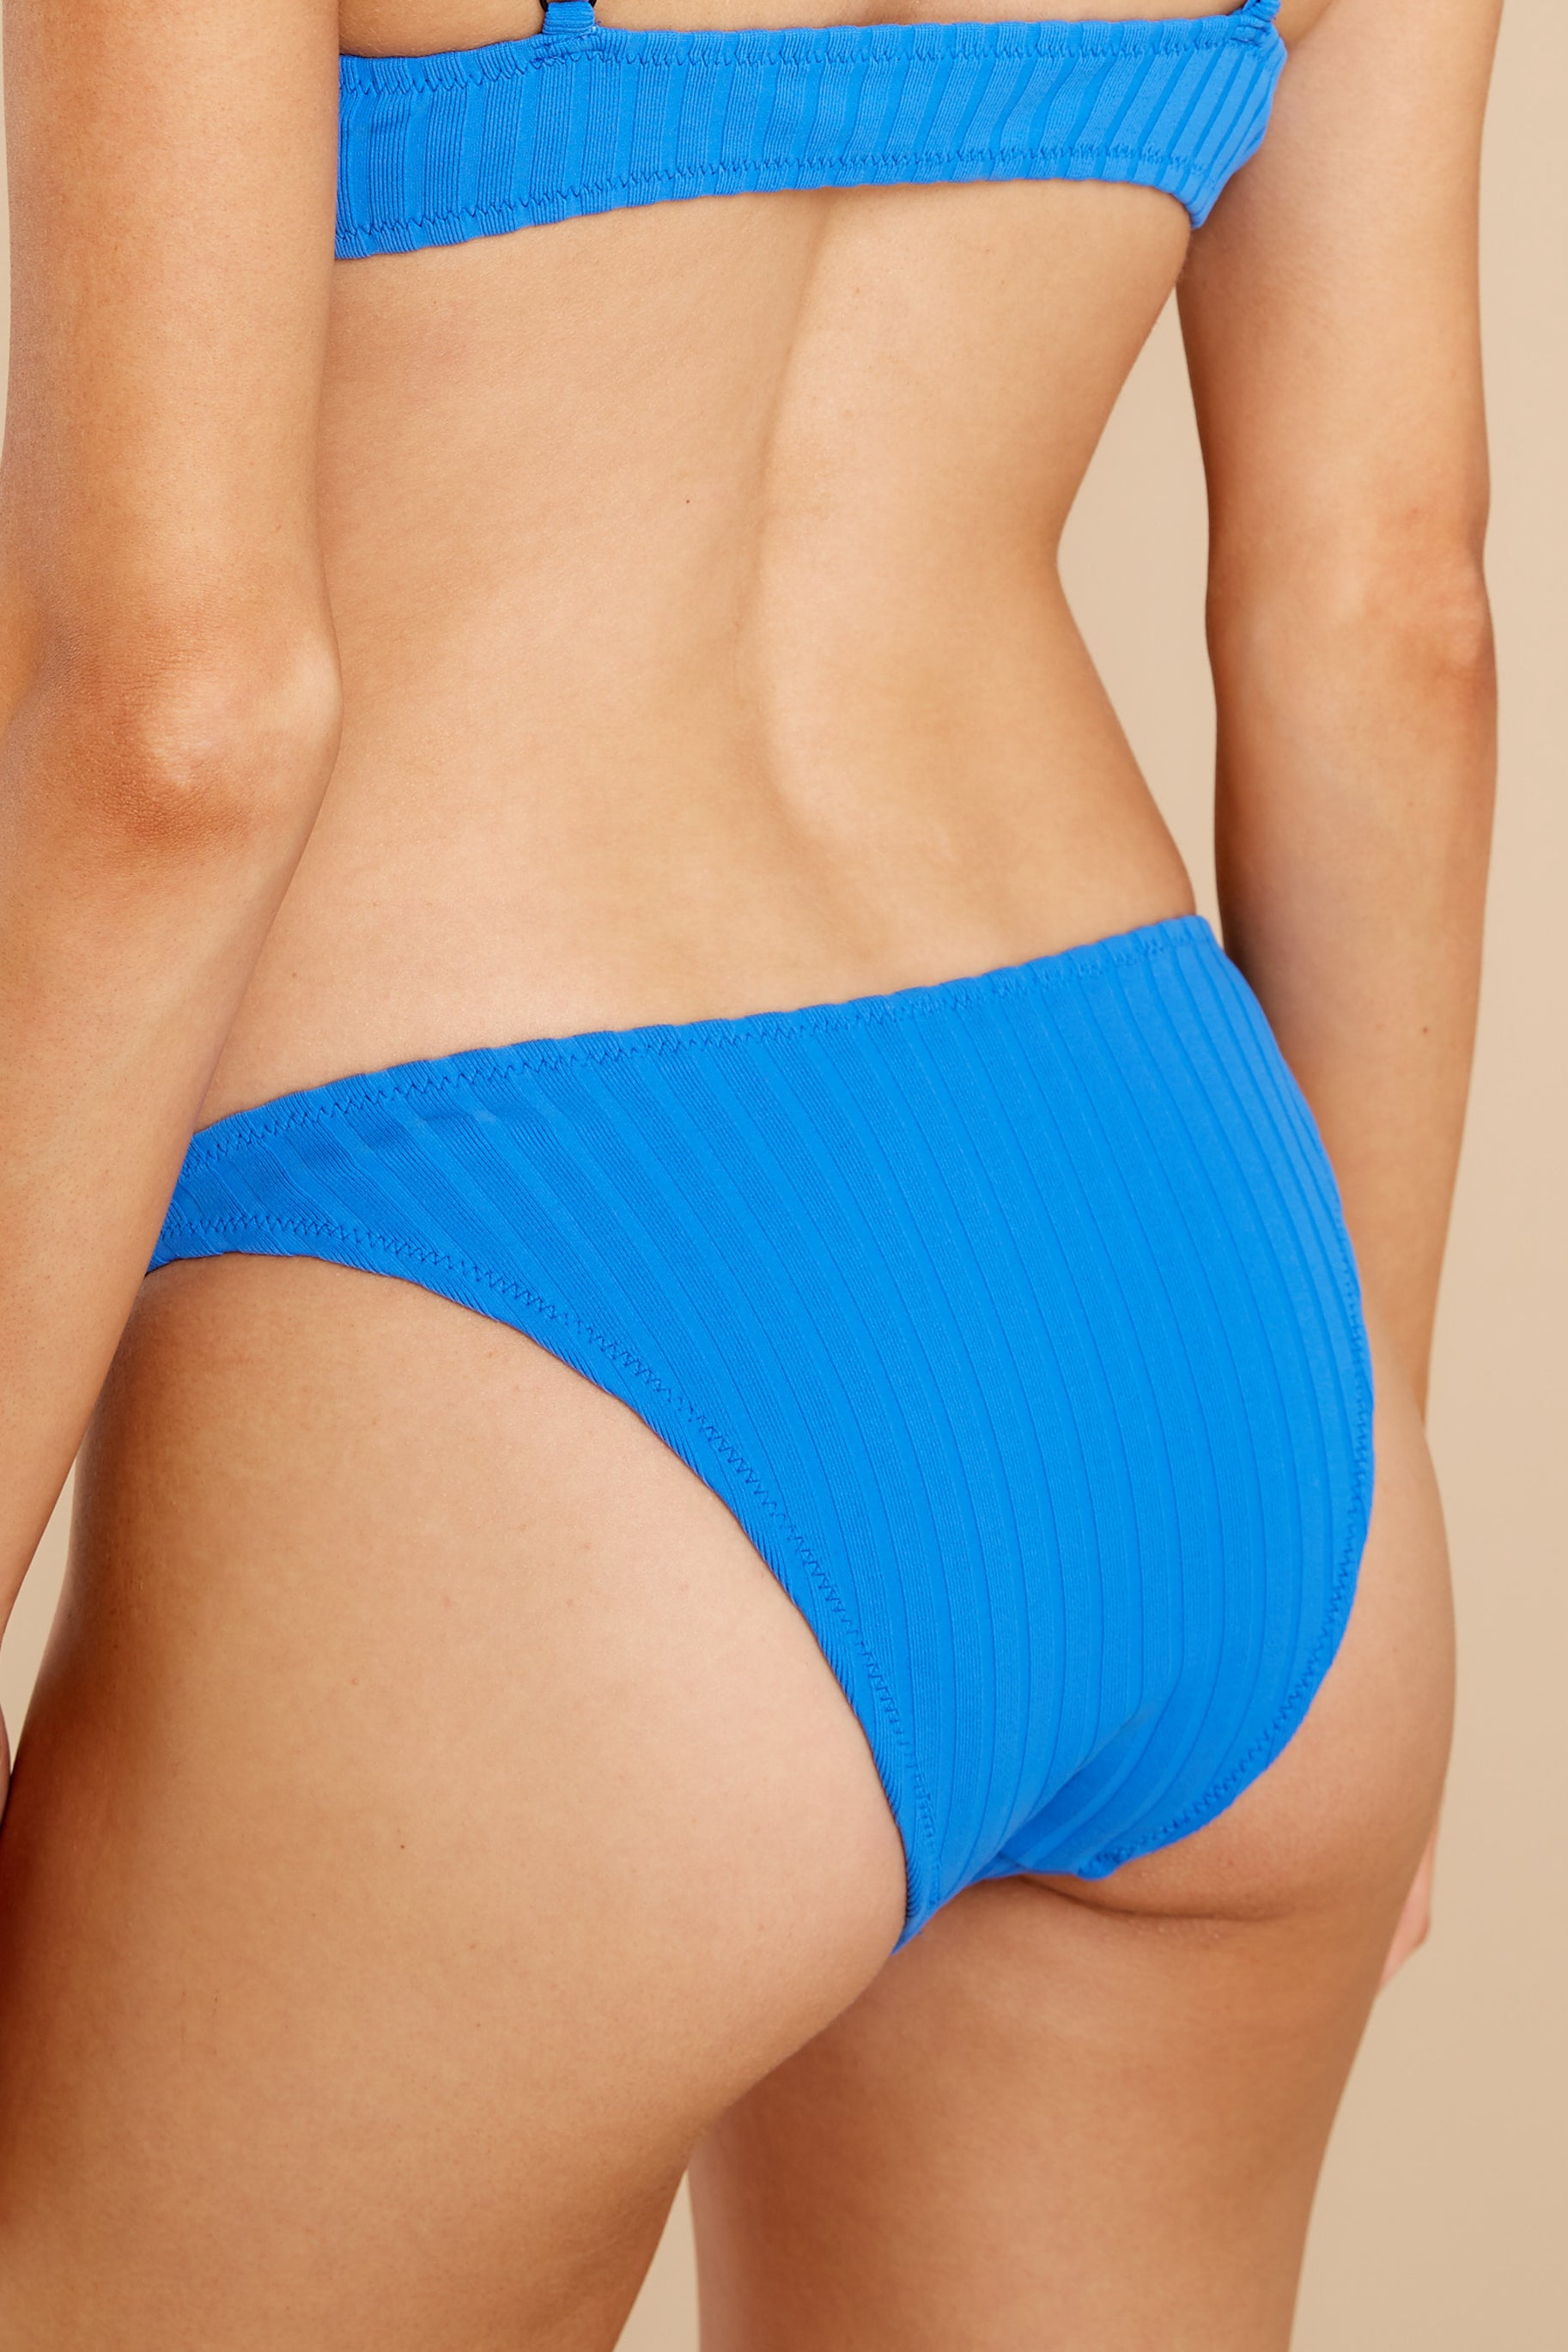 2 Elsa Laguna Blue Solid Rib Bikini Bottoms at reddress.com